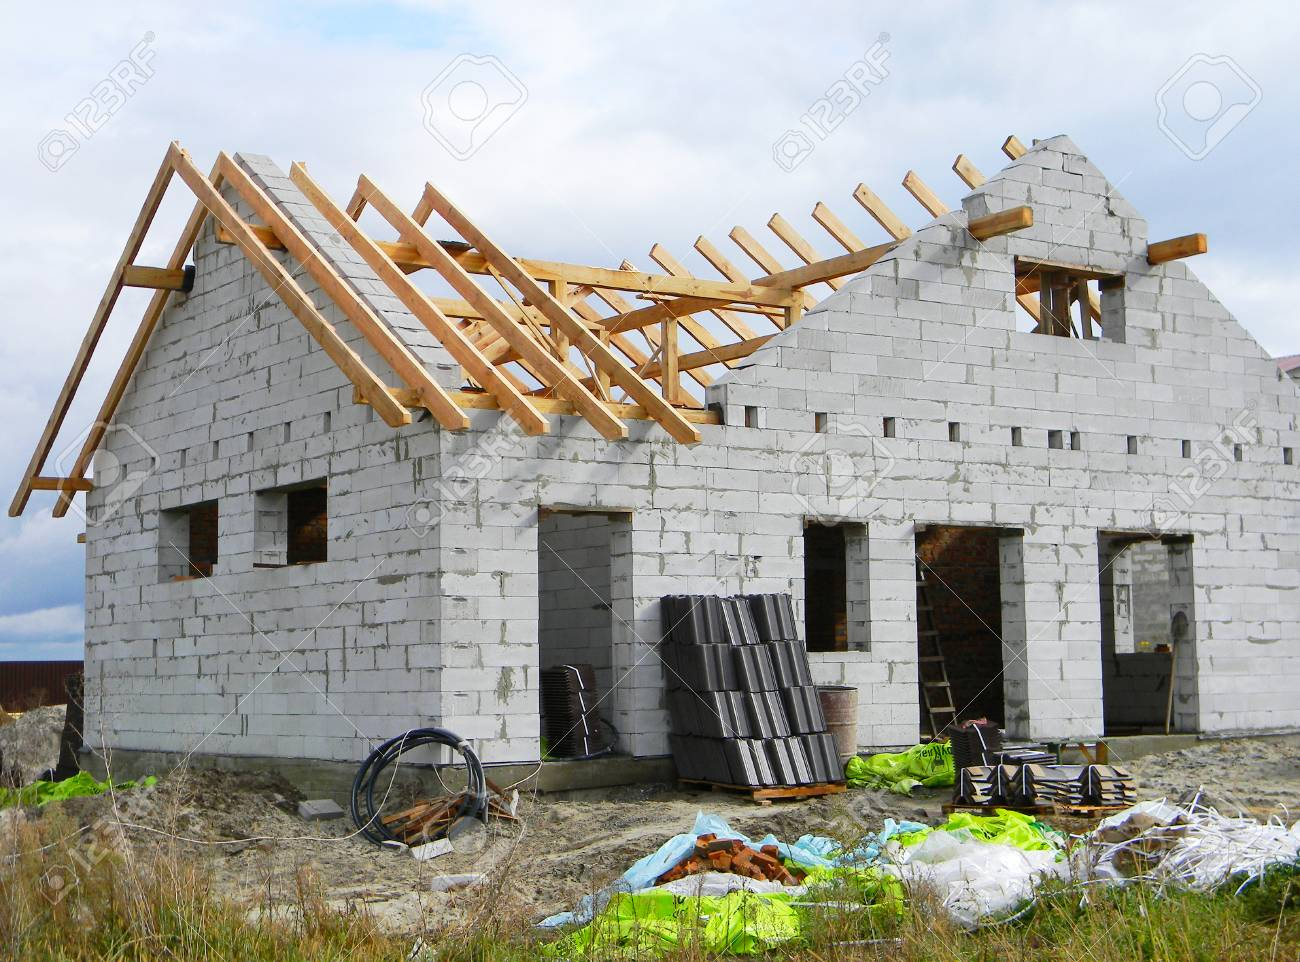 House Roofing Construction With Wooden Trusses Timber Roof